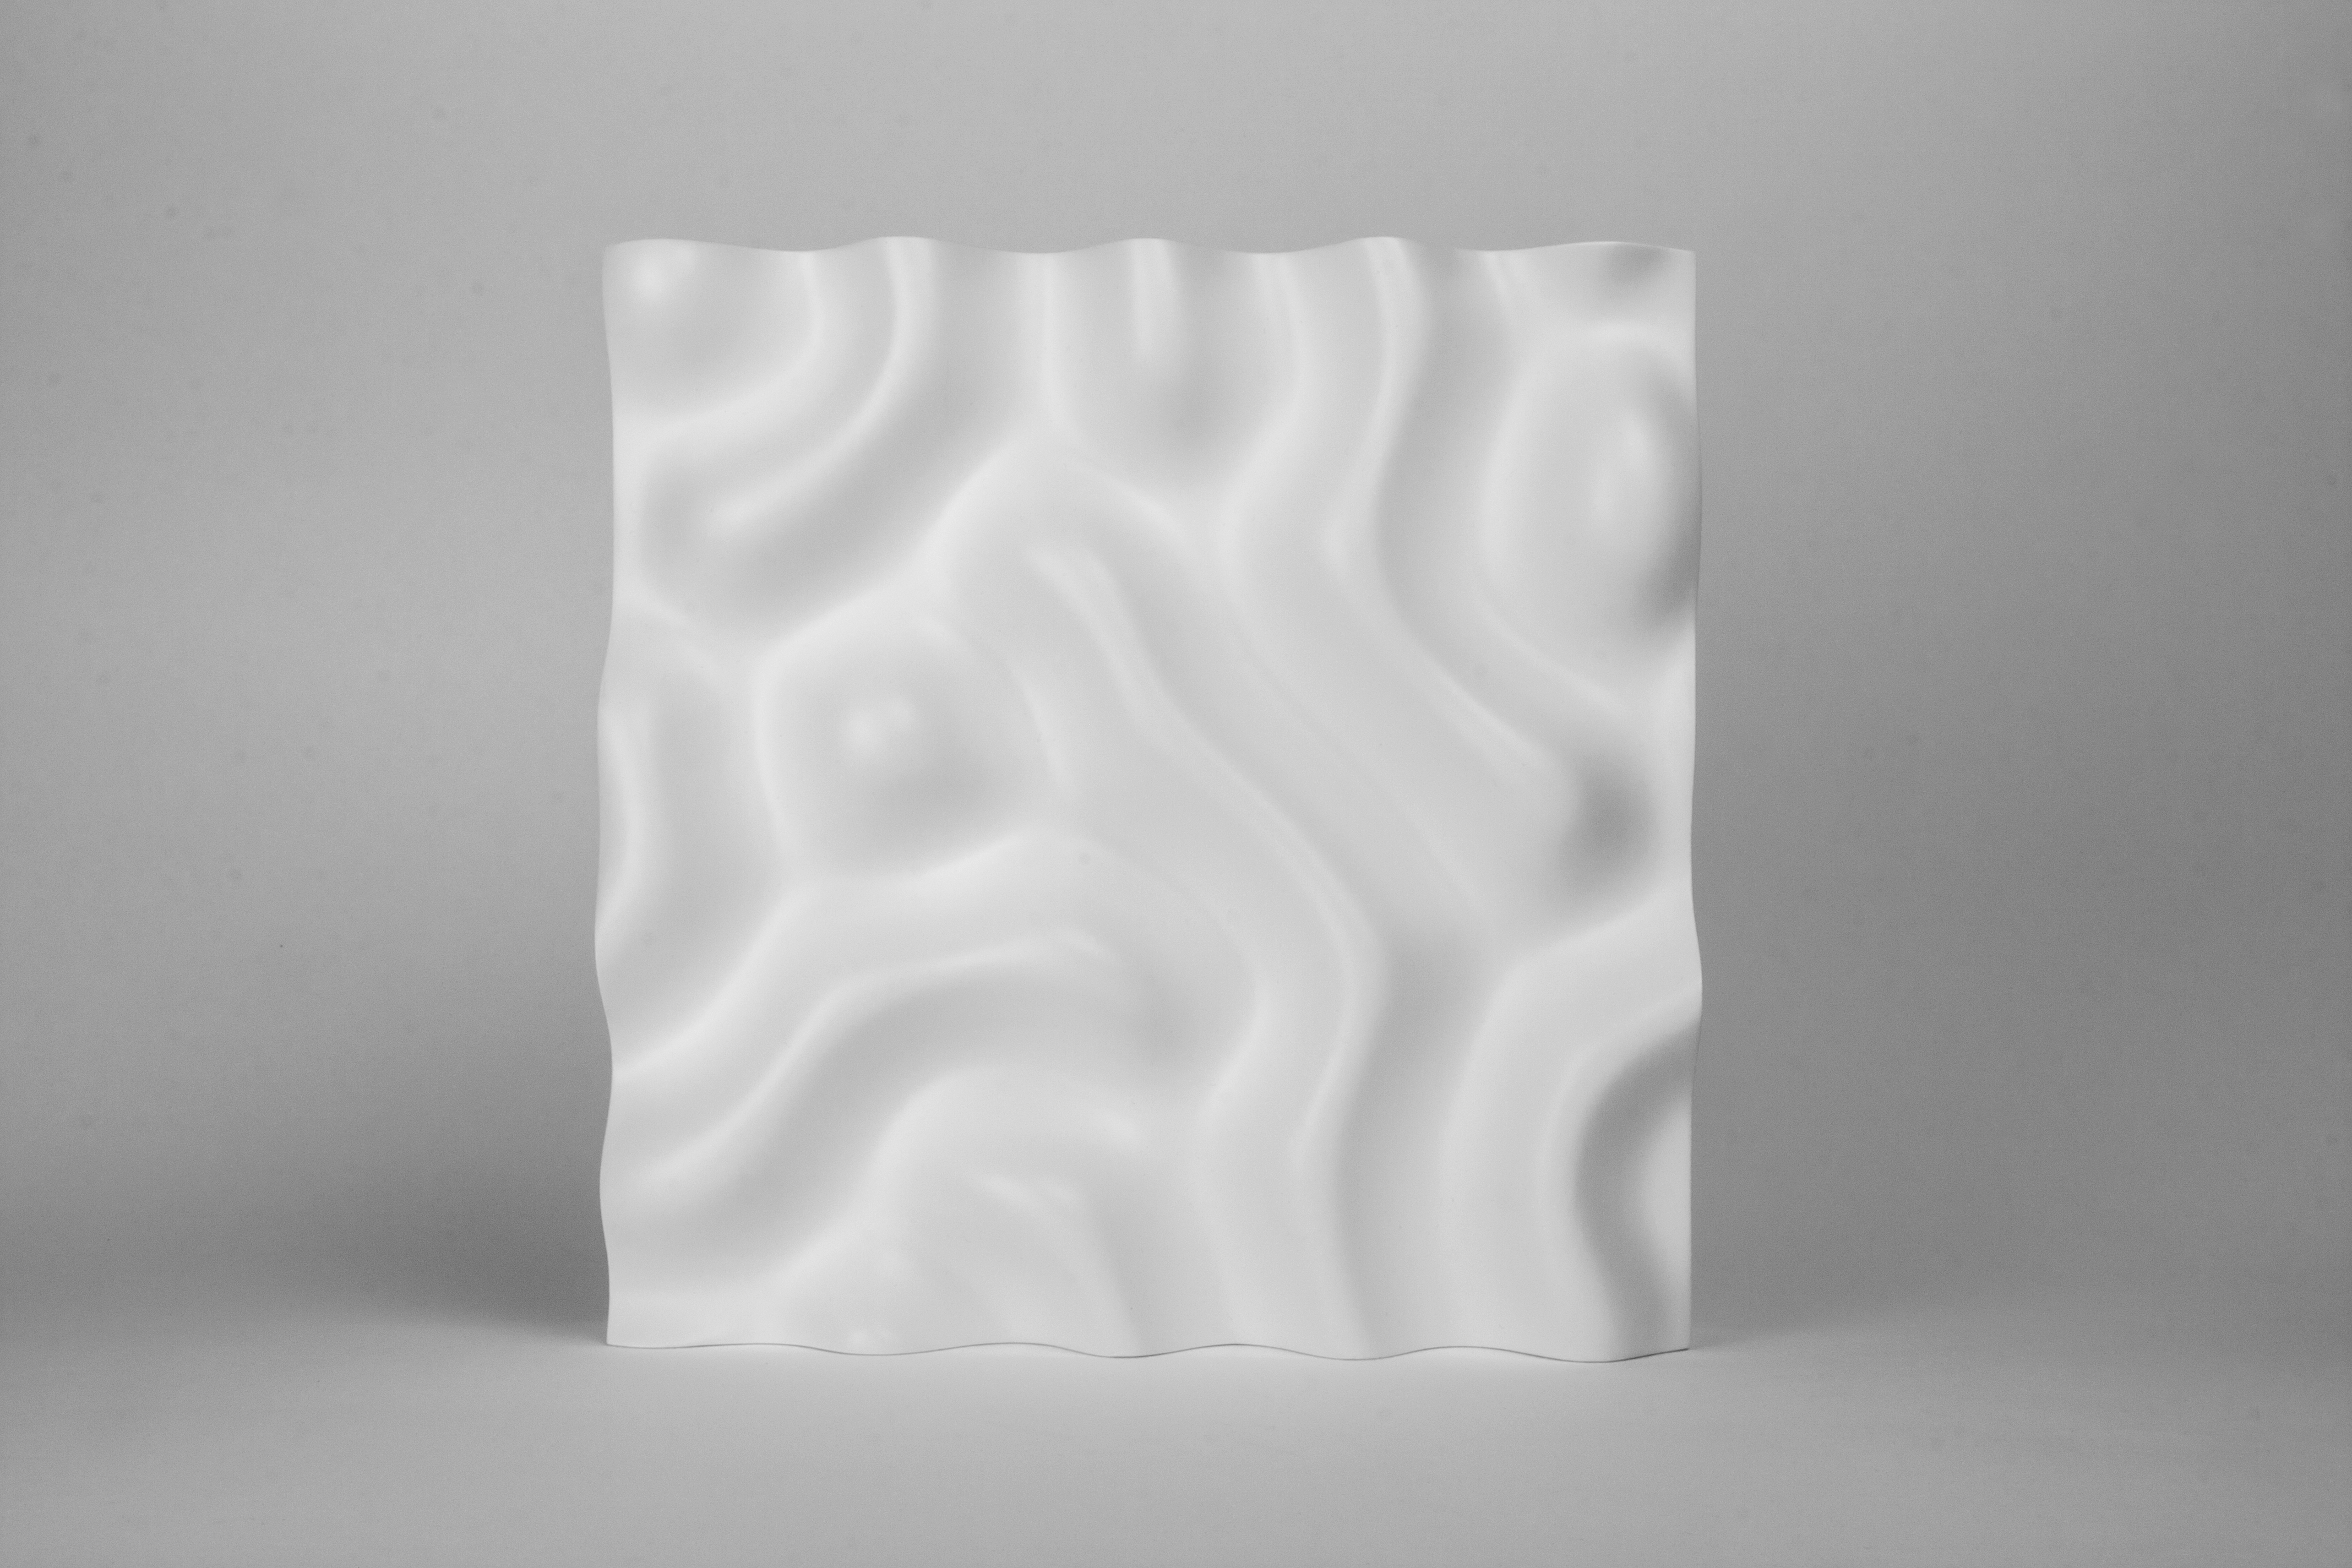 Picture of CNC Milled Reaction Diffusion Sculpture